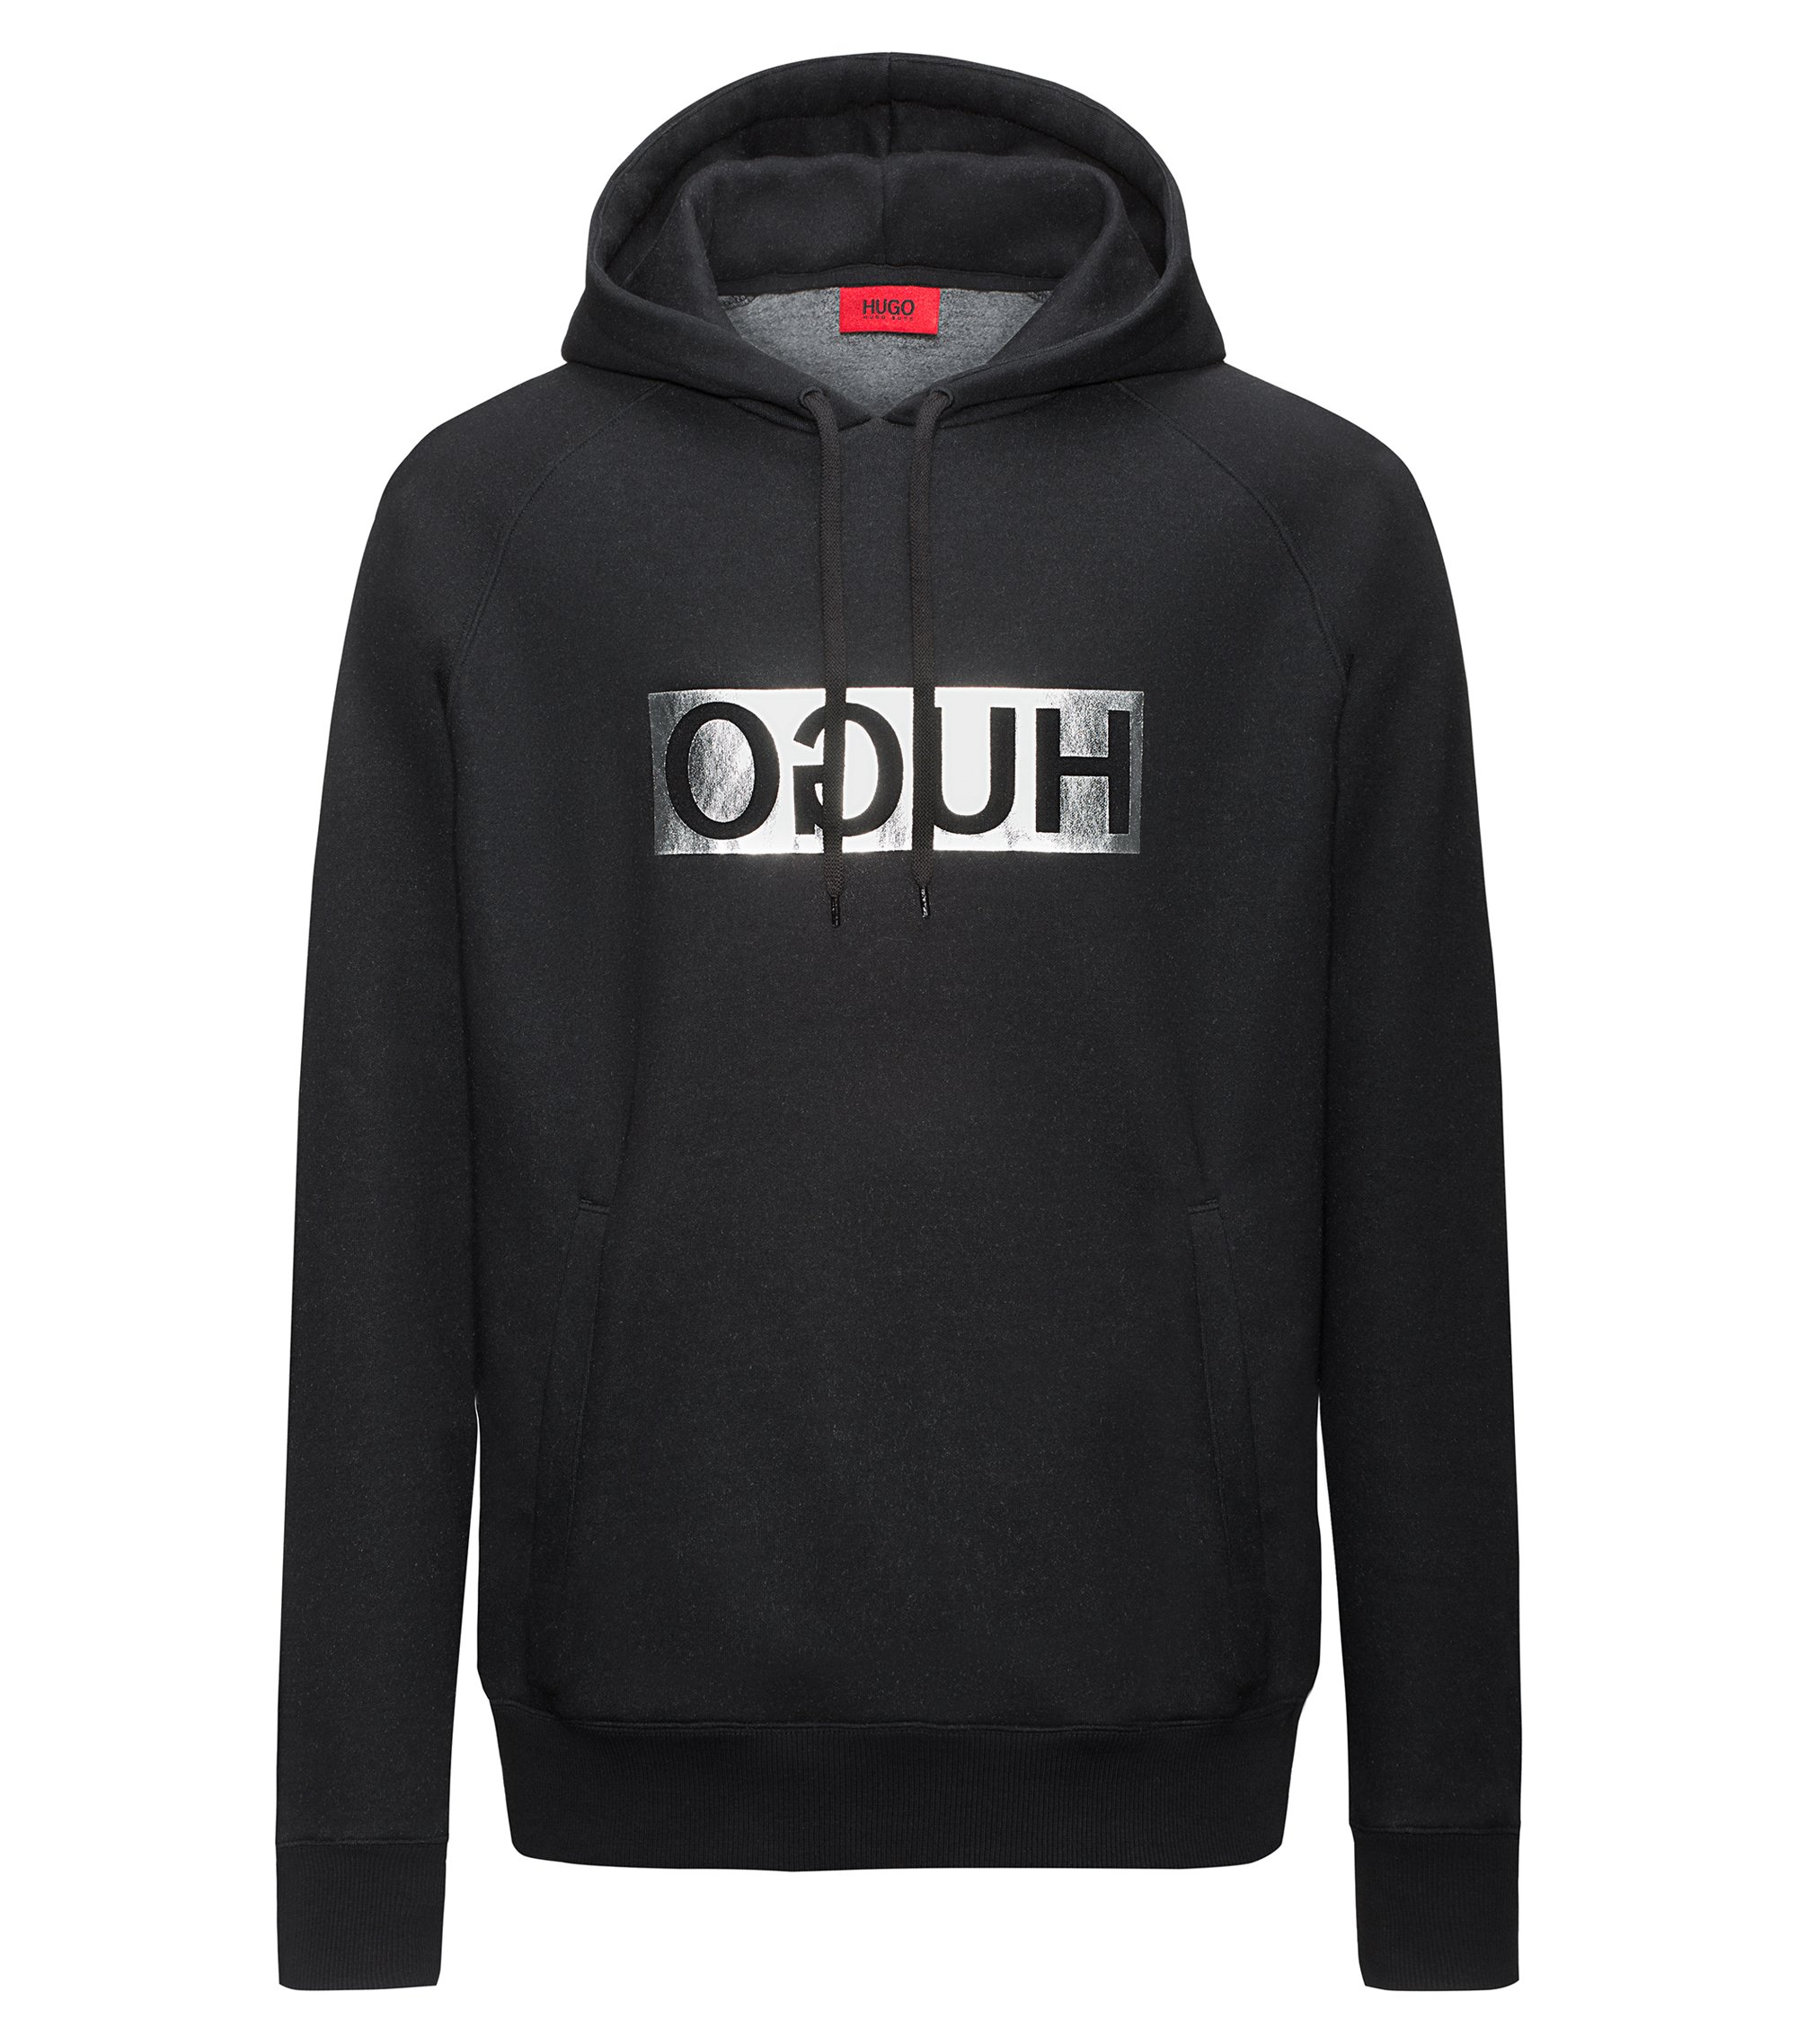 Reverse-logo hooded sweater in a cotton blend, Black